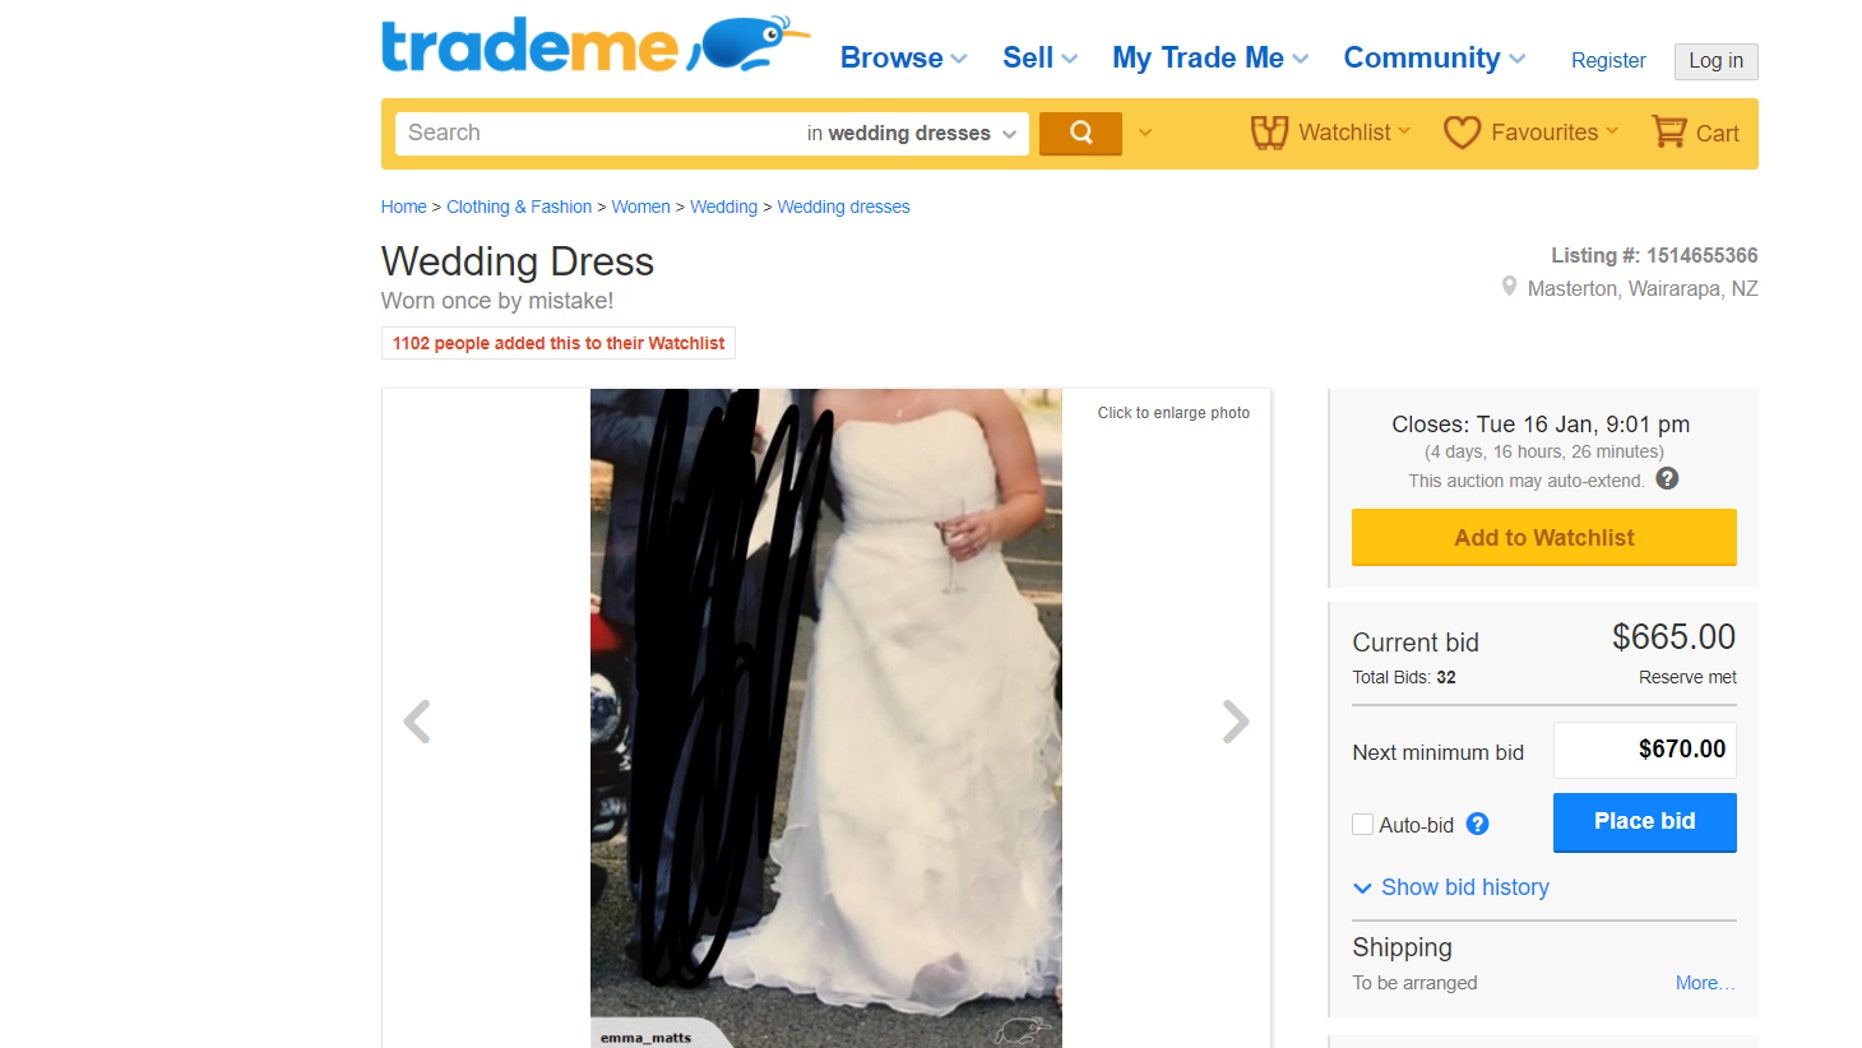 bride posts ad for wedding dress worn once by mistake fox news